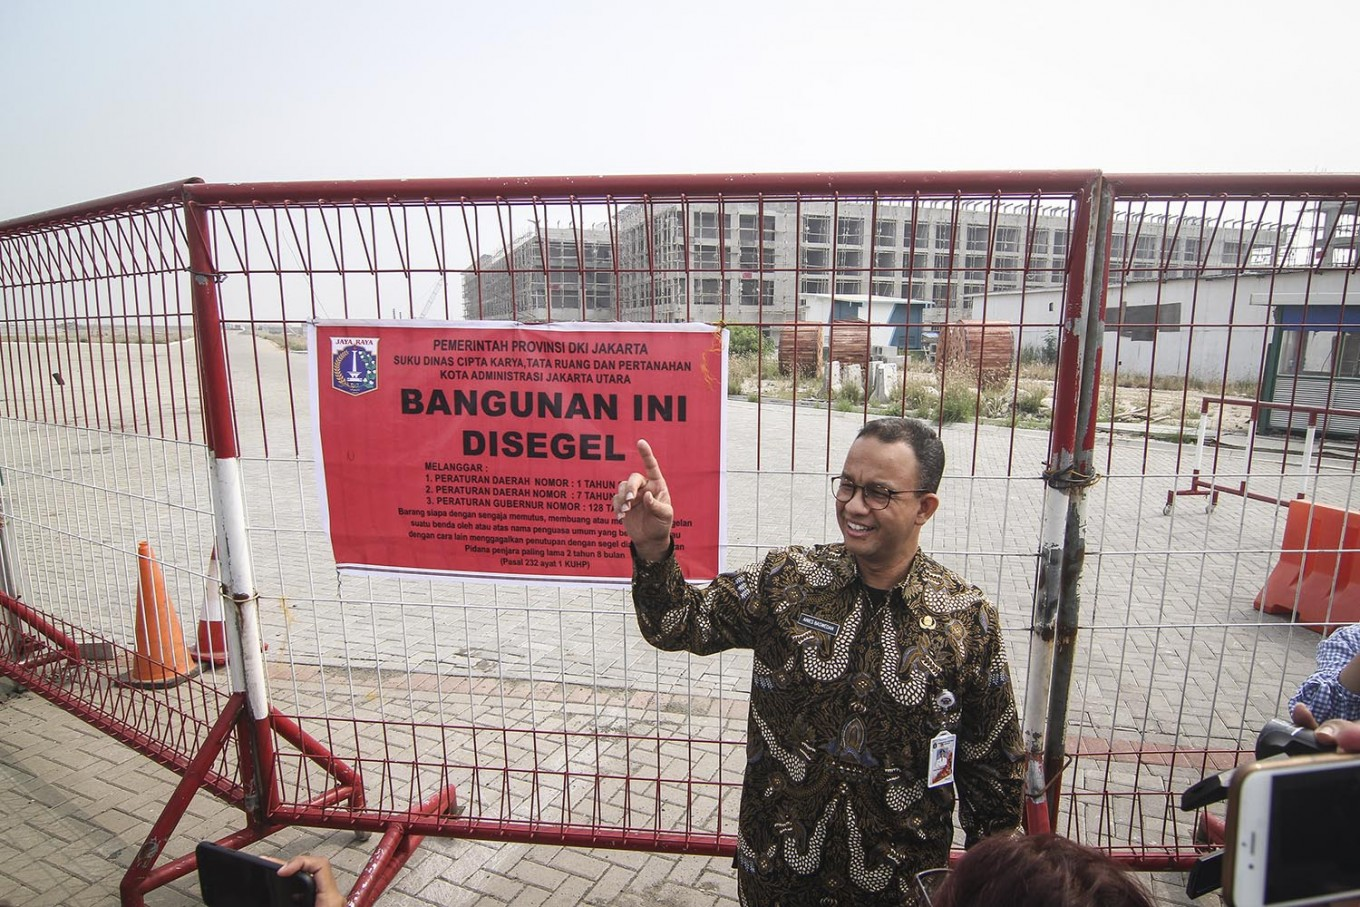 50 percent of areas on existing islets to be reserved for public: Anies